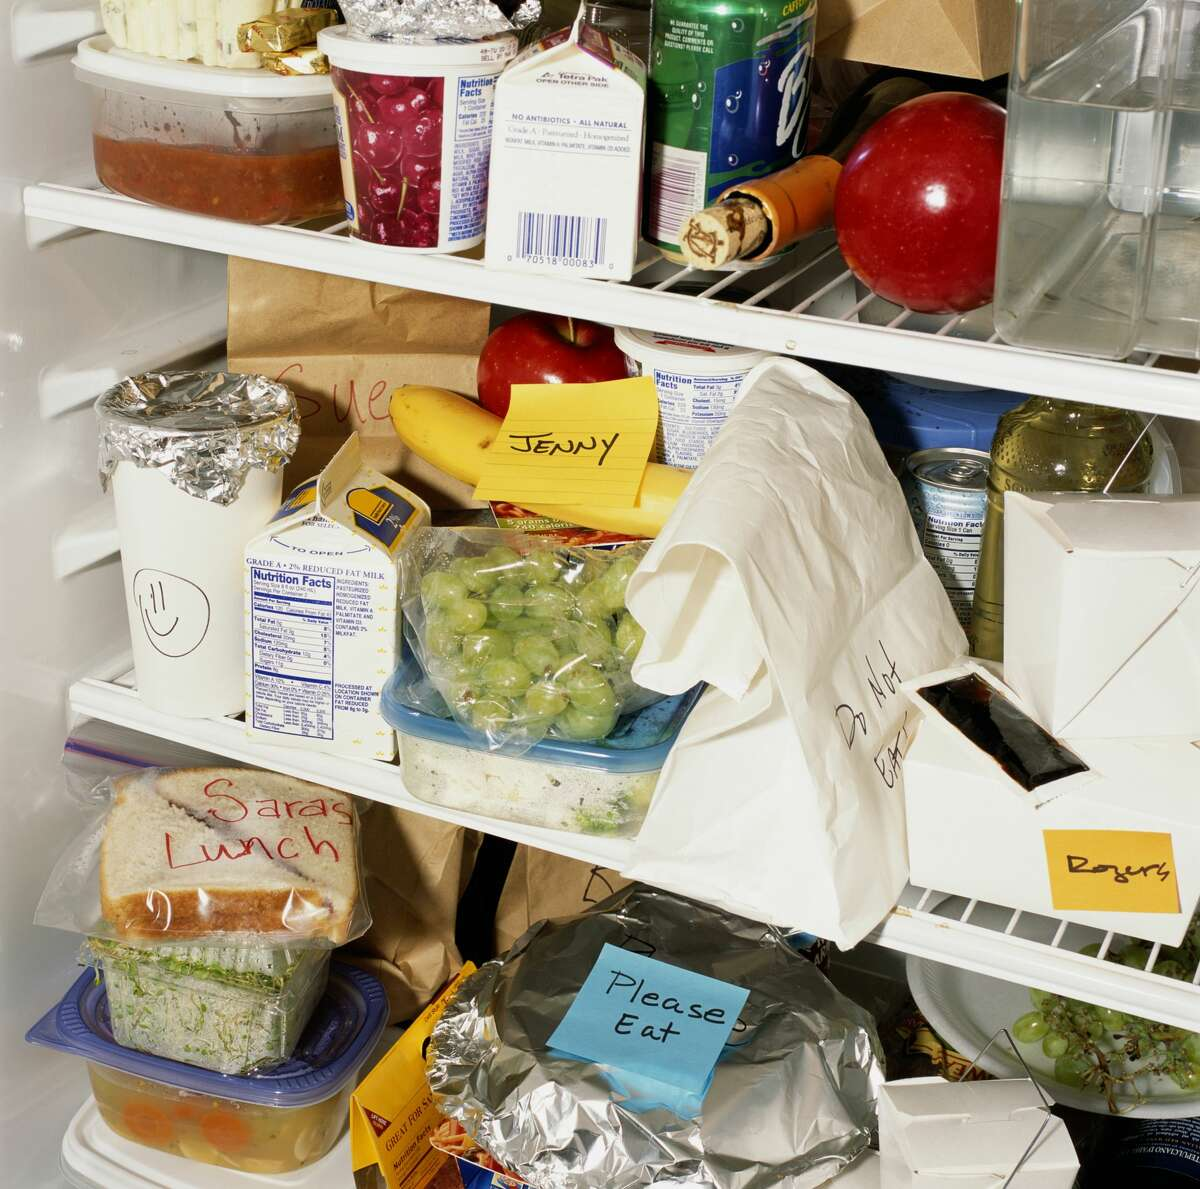 Check out the slideshow to see all the foods you should keep refrigerated -- and why.